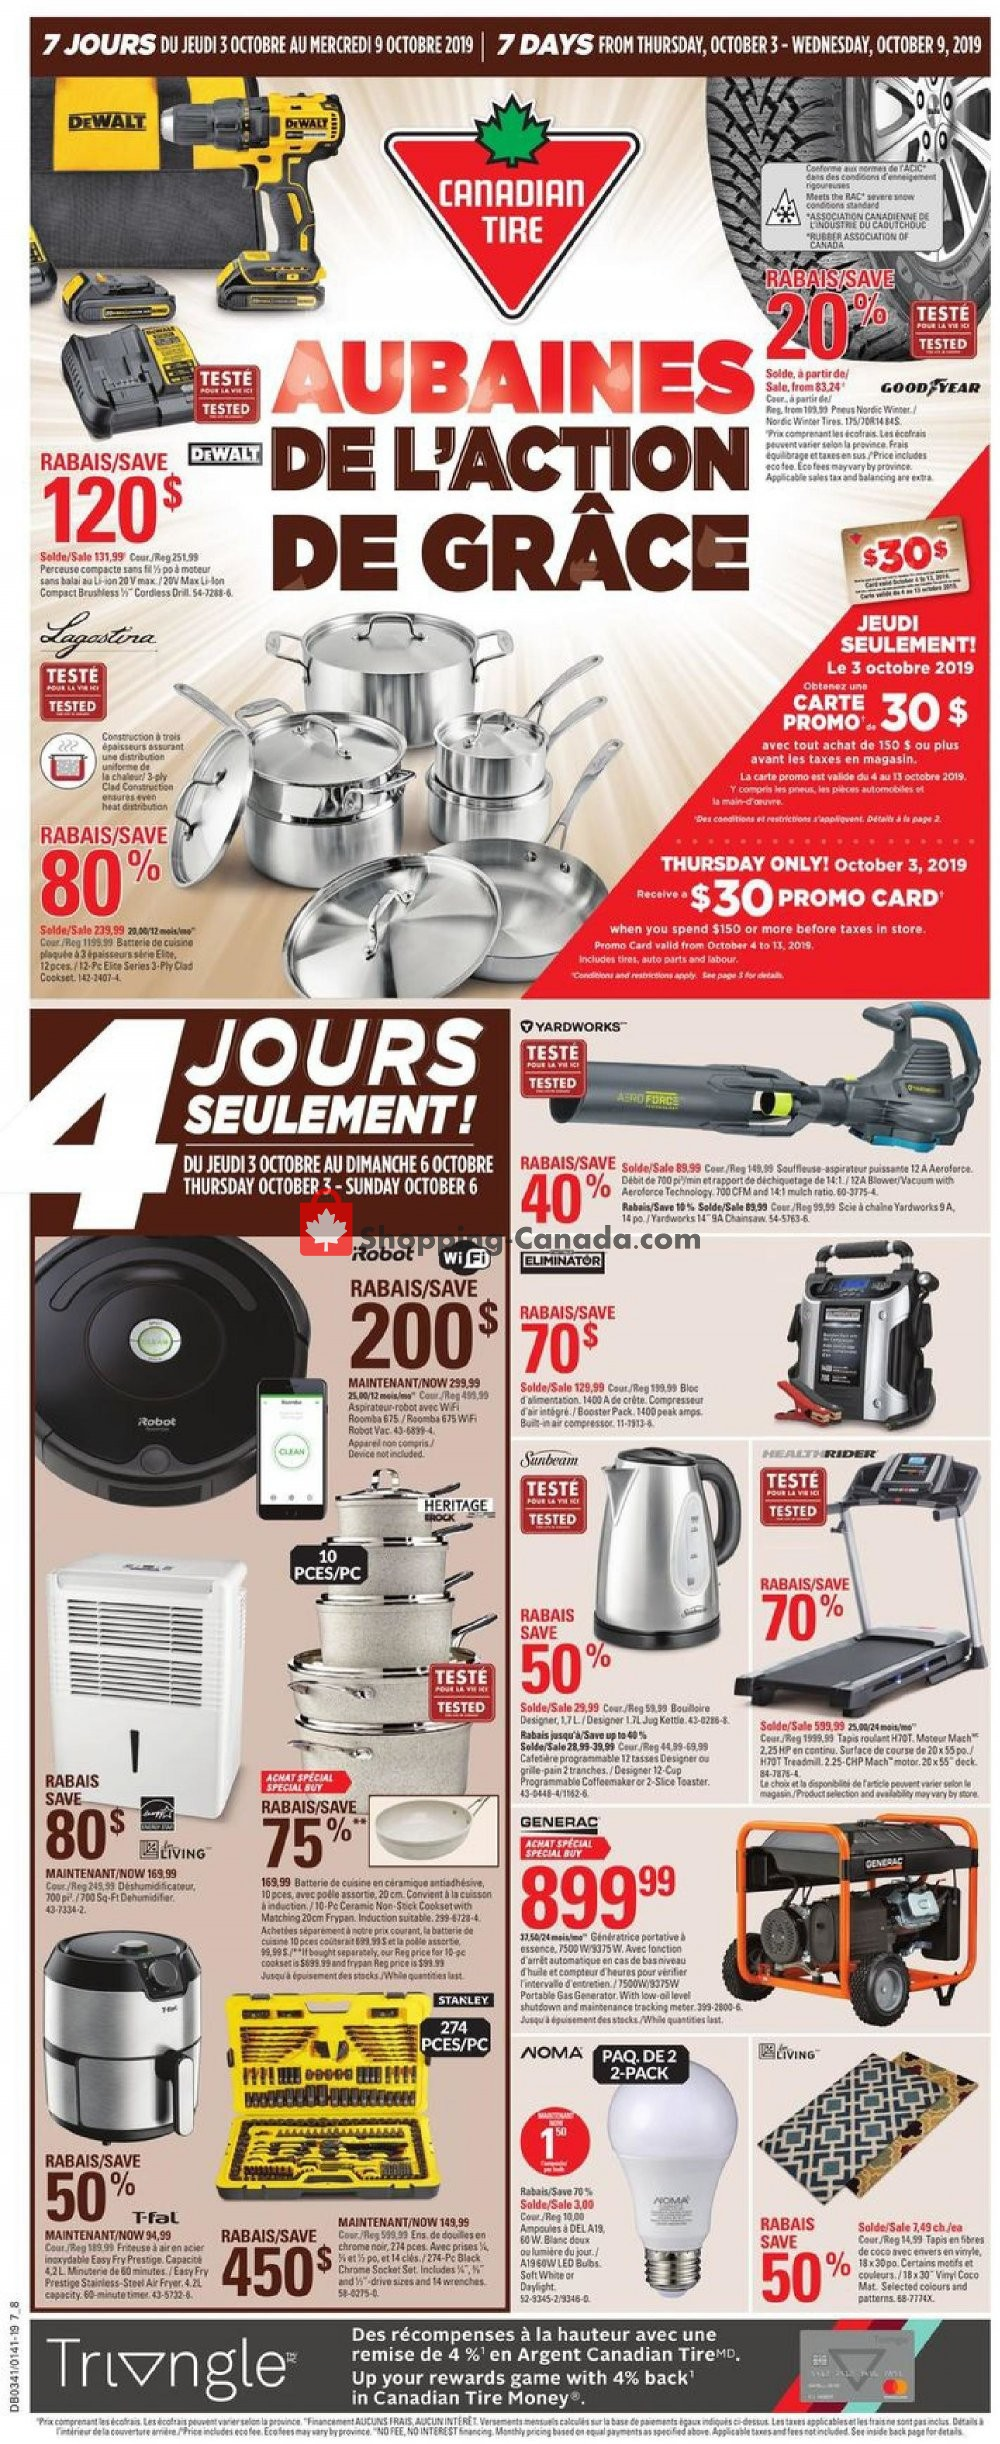 Flyer Canadian Tire Canada - from Thursday October 3, 2019 to Wednesday October 9, 2019